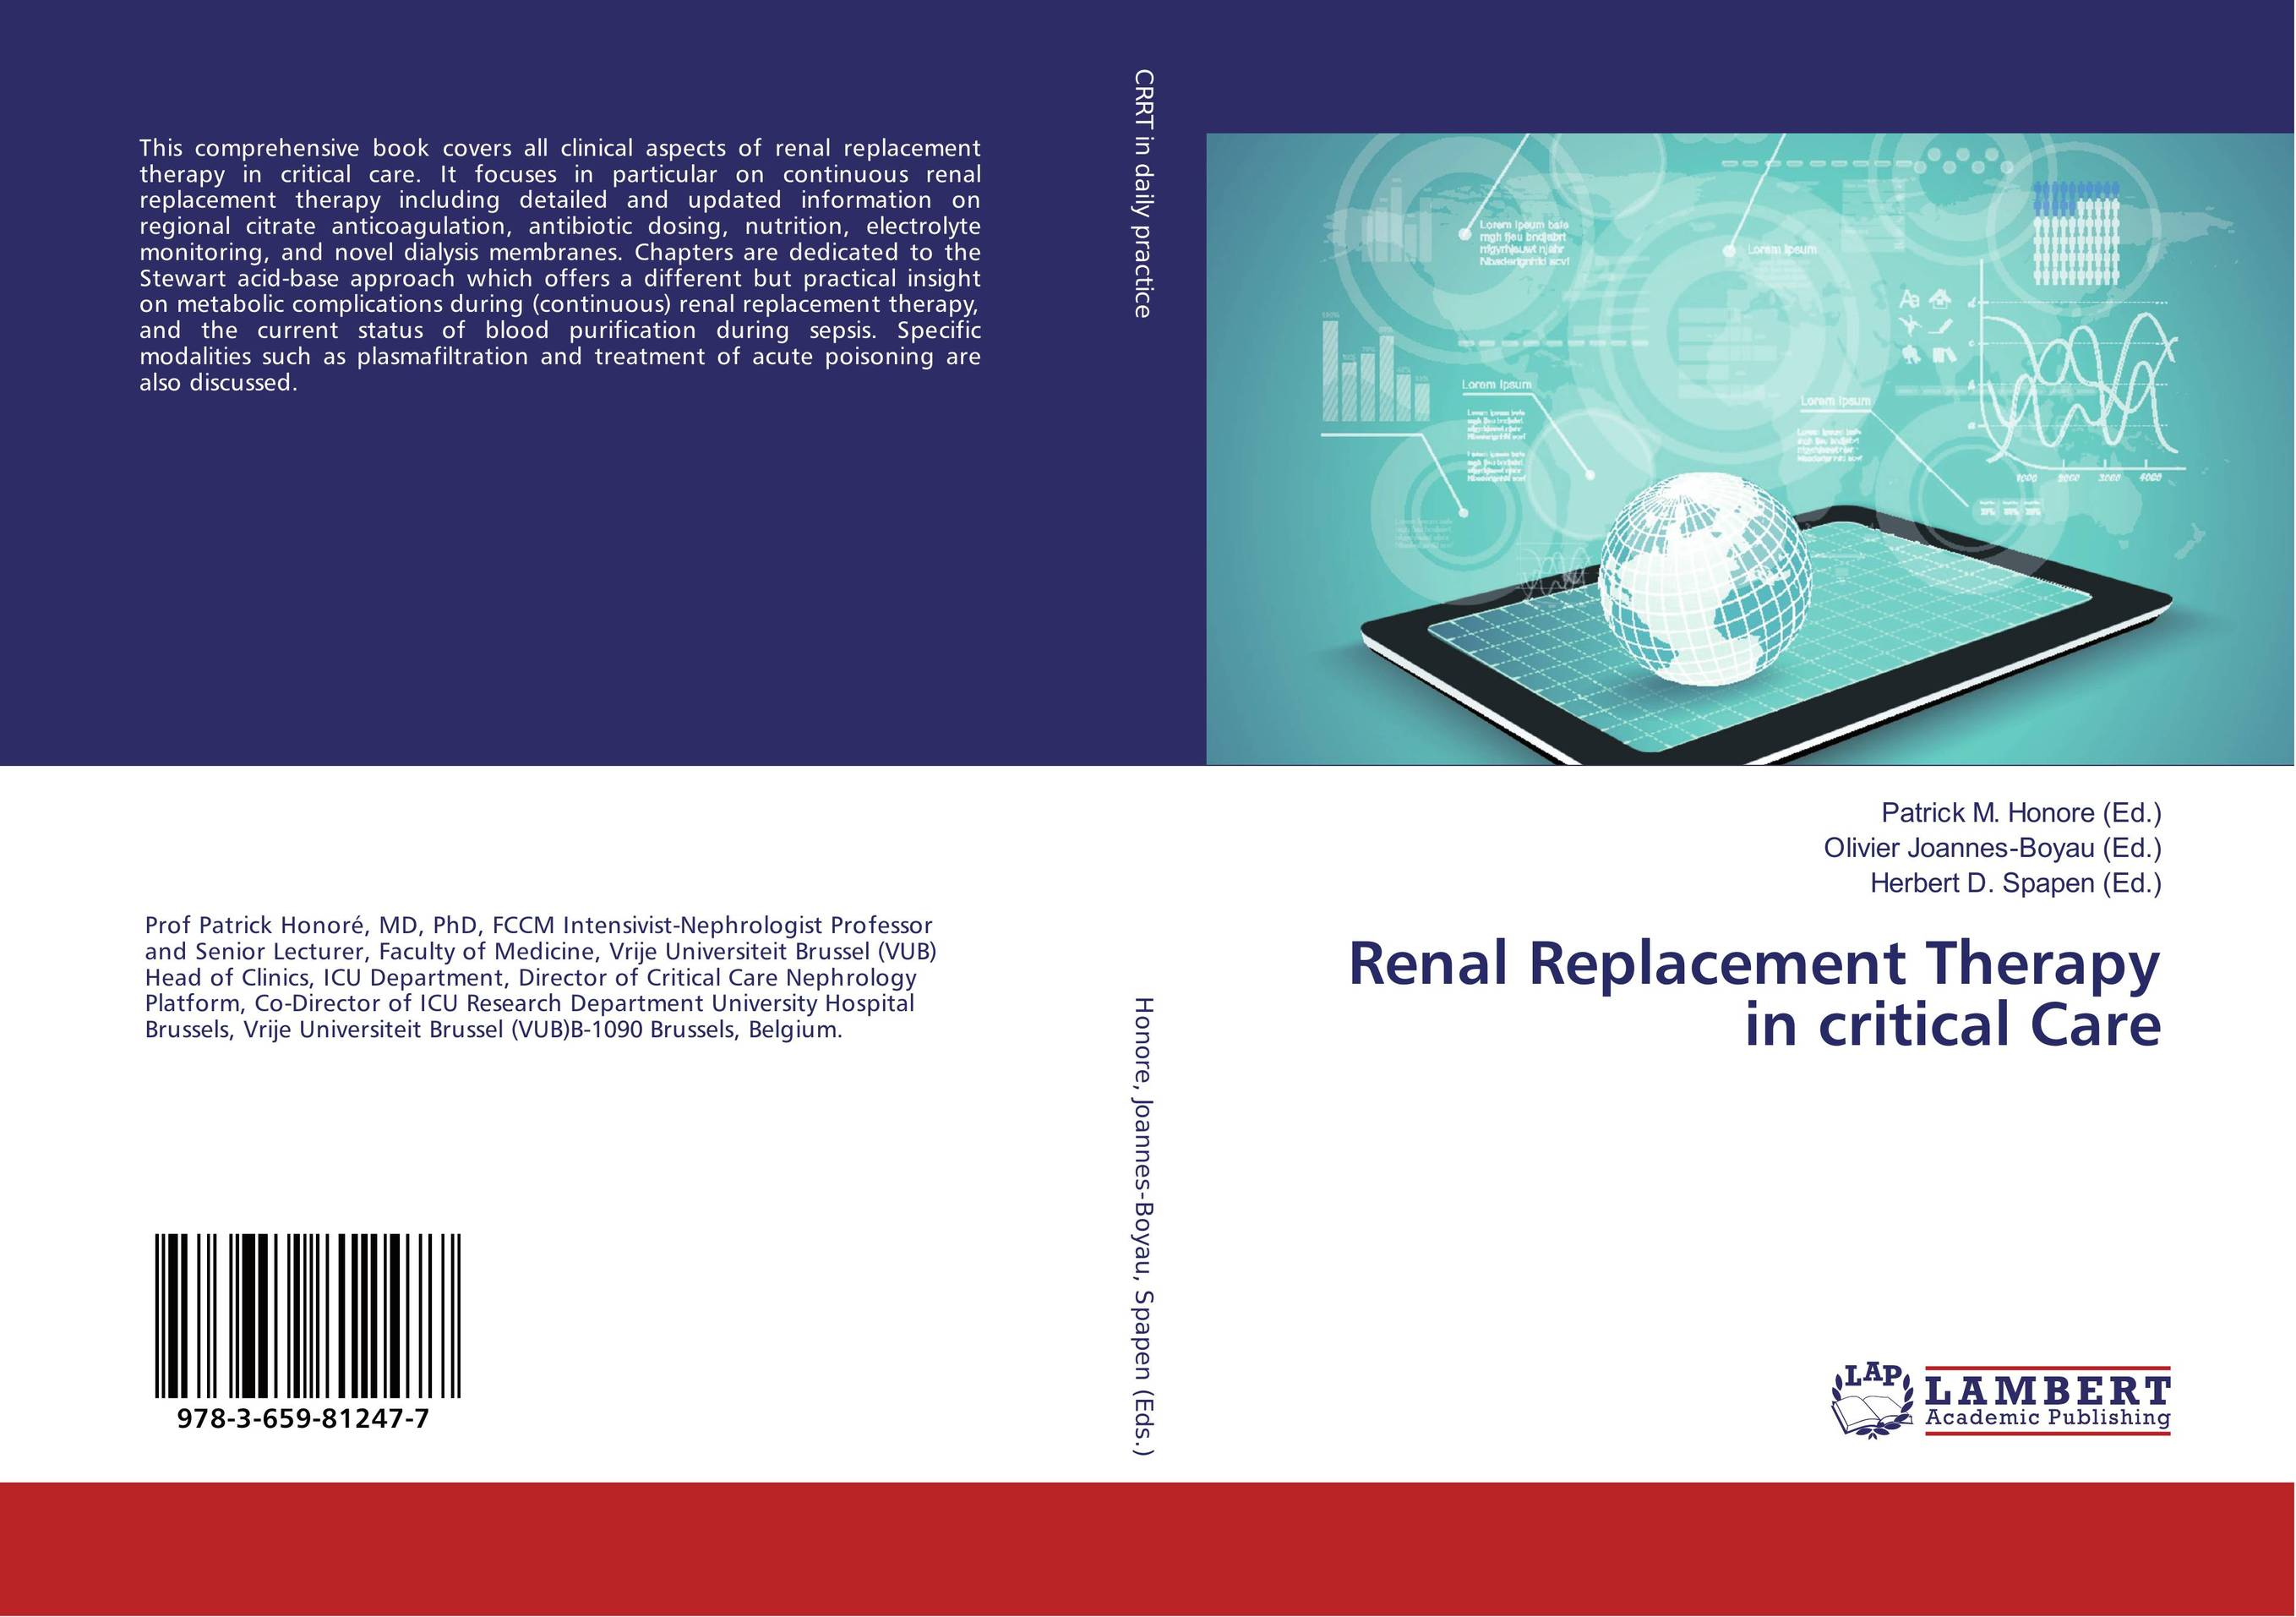 Renal Replacement Therapy in critical Care